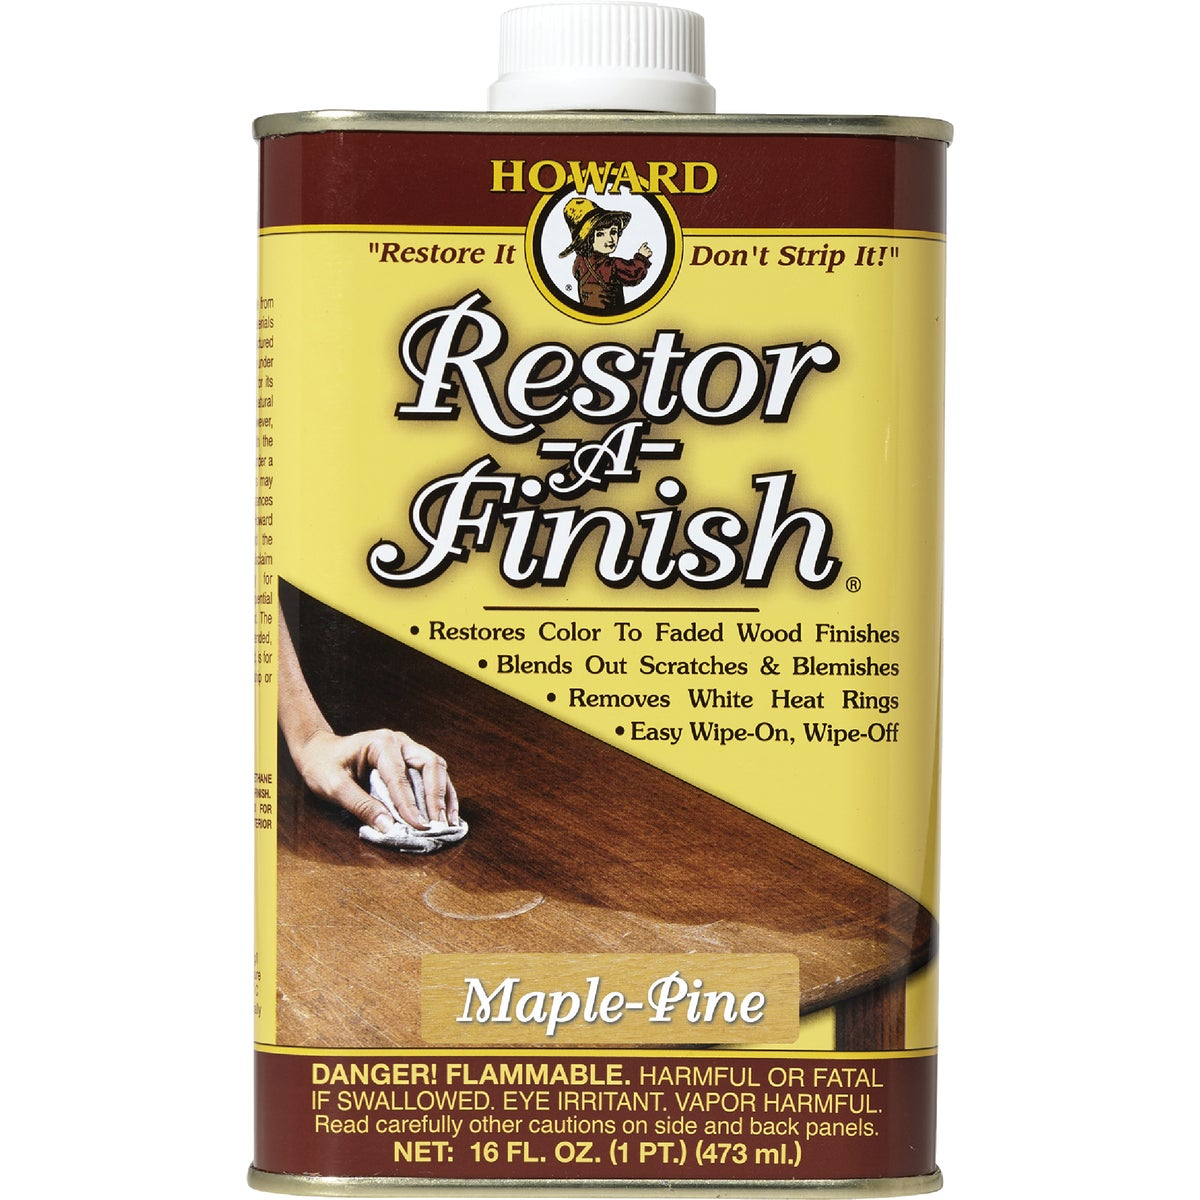 MAPL/PNE RESTOR-A-FINISH